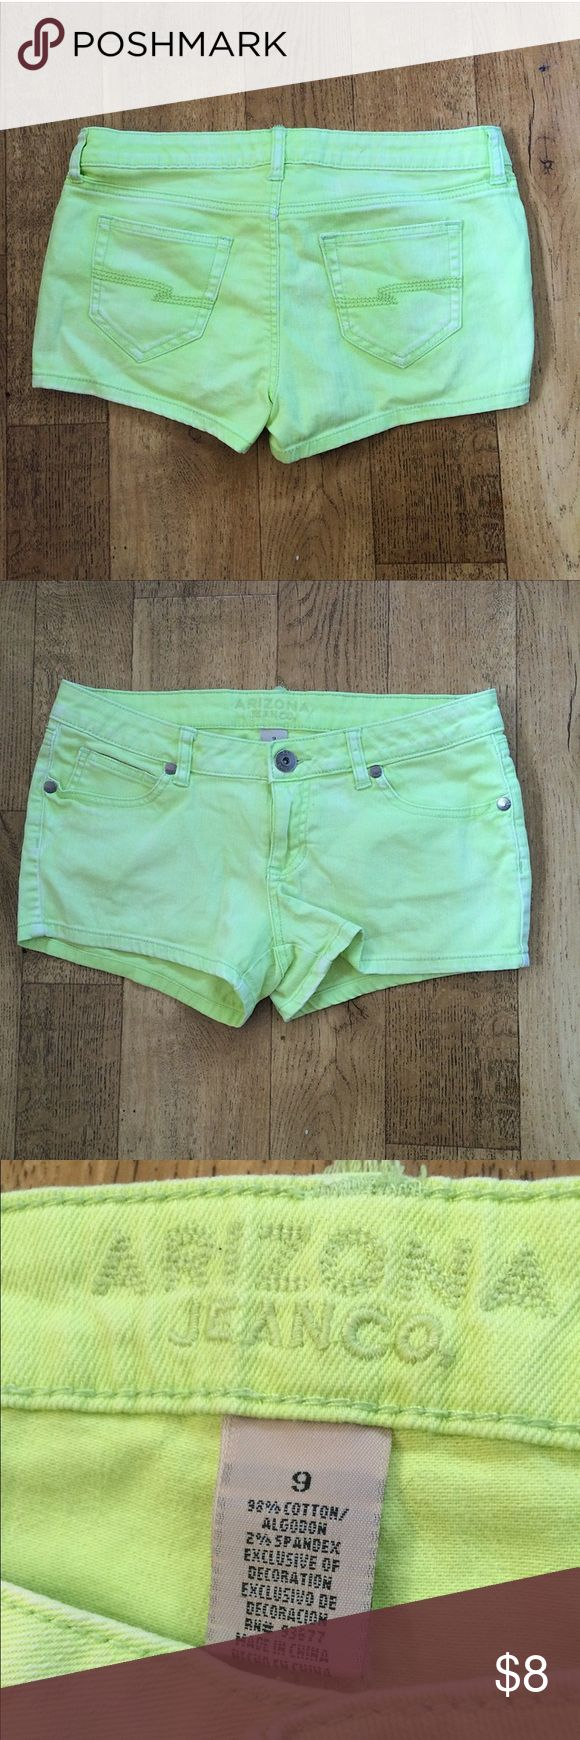 Neon Green/Yellow Arizona Jean Shorts•Sz 9 Arizona Brand Jean Shorts•Neon Green/Yellow•Size 9 Juniors Arizona Jean Company Shorts Jean Shorts